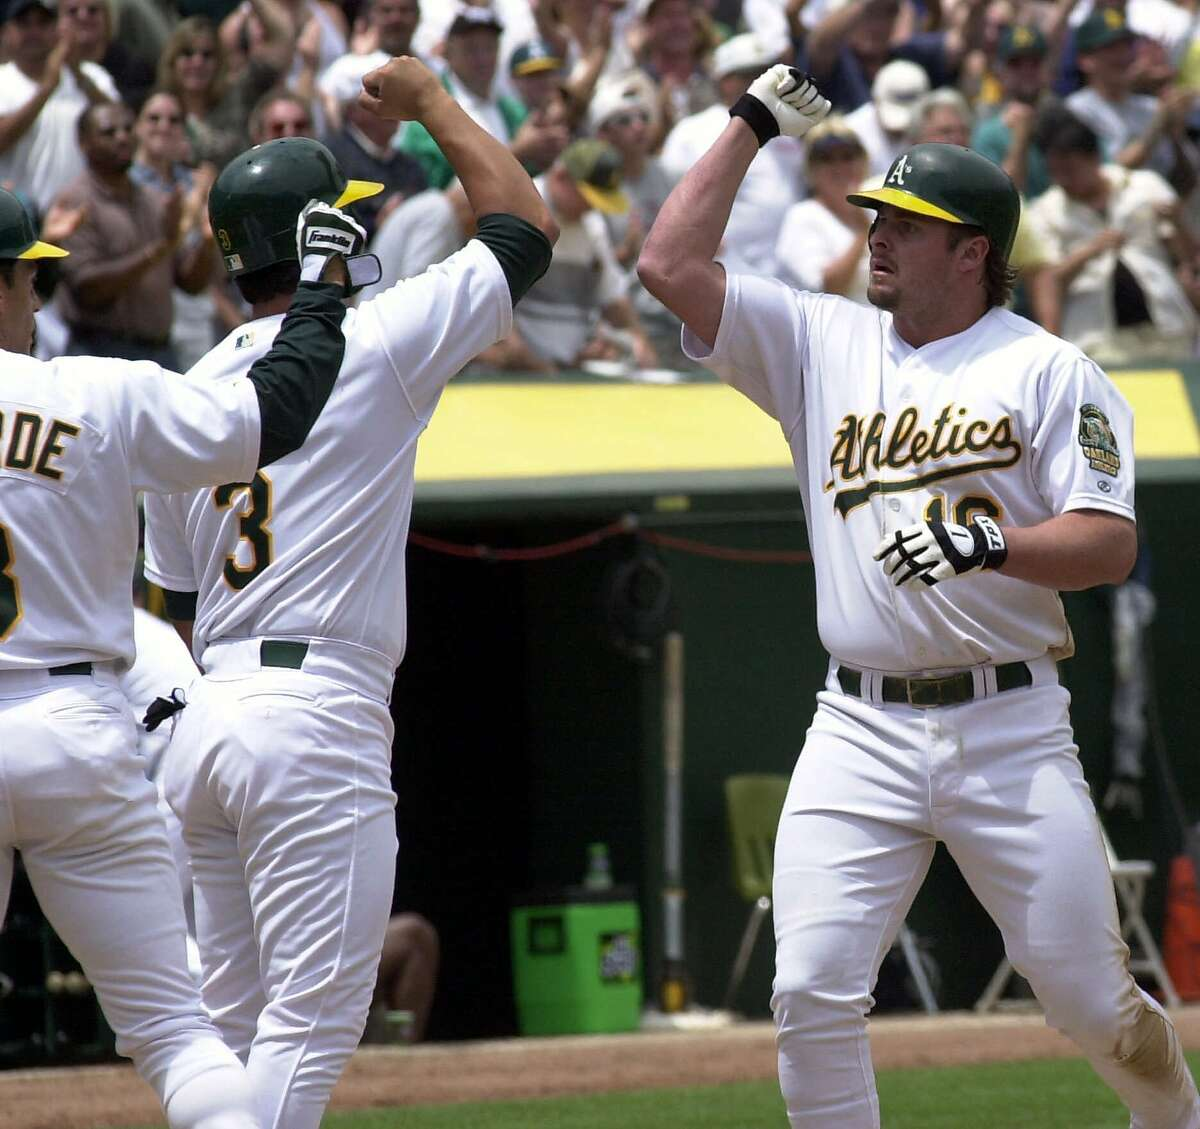 Oakland Athletics' Jason Giambi, right, is welcomed at home plate by teammates Eric Chavez (3) and Randy Velarde after hitting a grand slam off San Diego Padres' Matt Clement in the fourth inning Wednesday, June, 7, 2000, in Oakland, Calif. Chavez and Velarde both scored on Giambi's homer. (AP Photo/Susan Ragan)